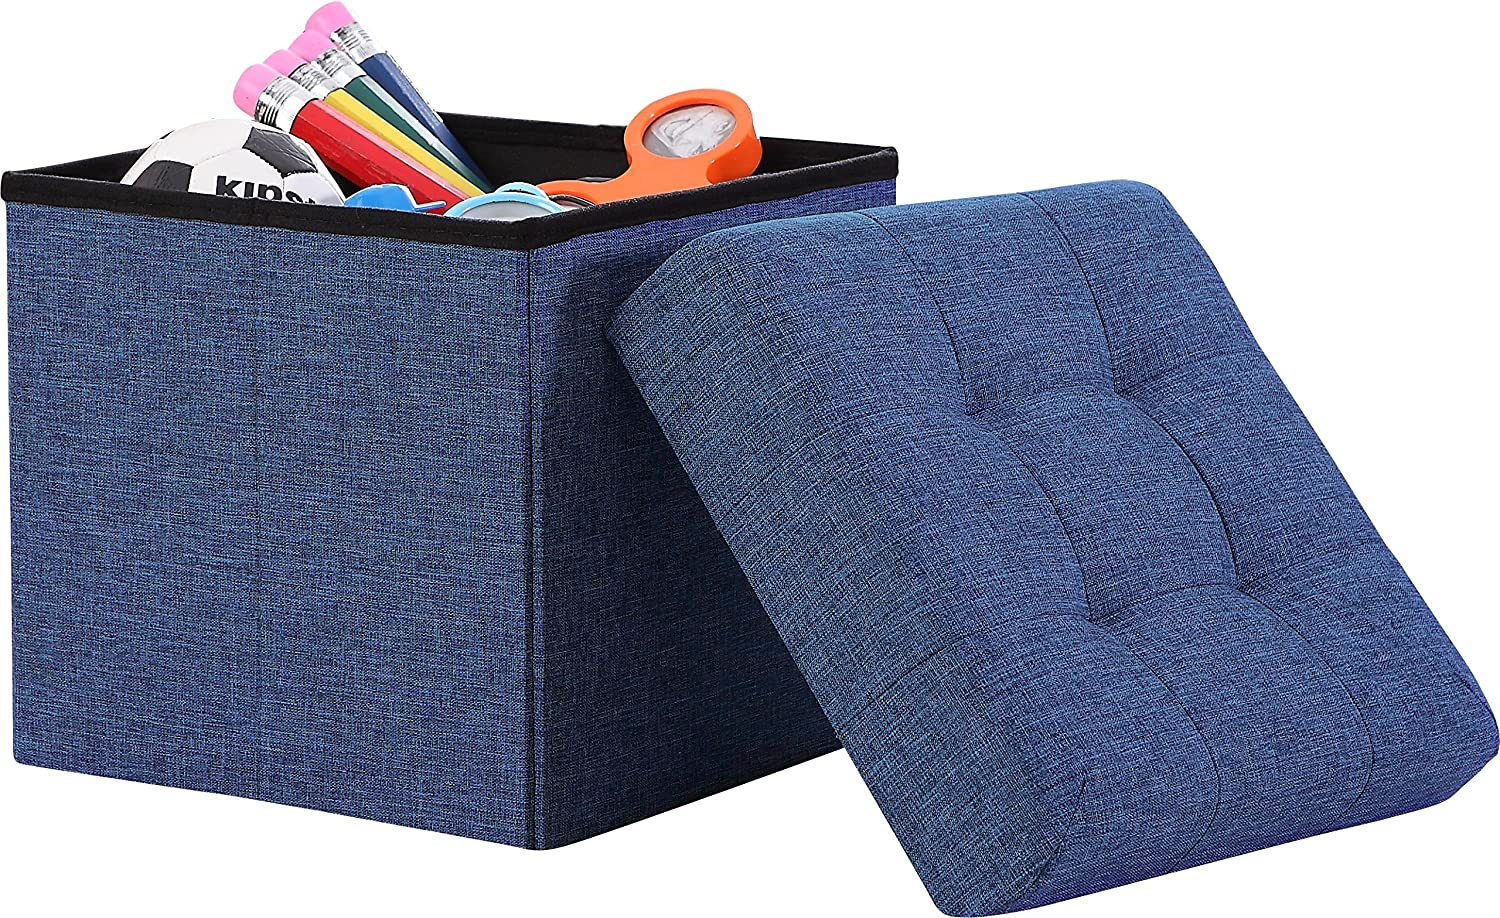 """Ornavo Home Foldable Tufted Linen Storage Ottoman Square Cube Foot Rest Stool/Seat - 15"""" x 15"""" x 15"""" (Navy)"""